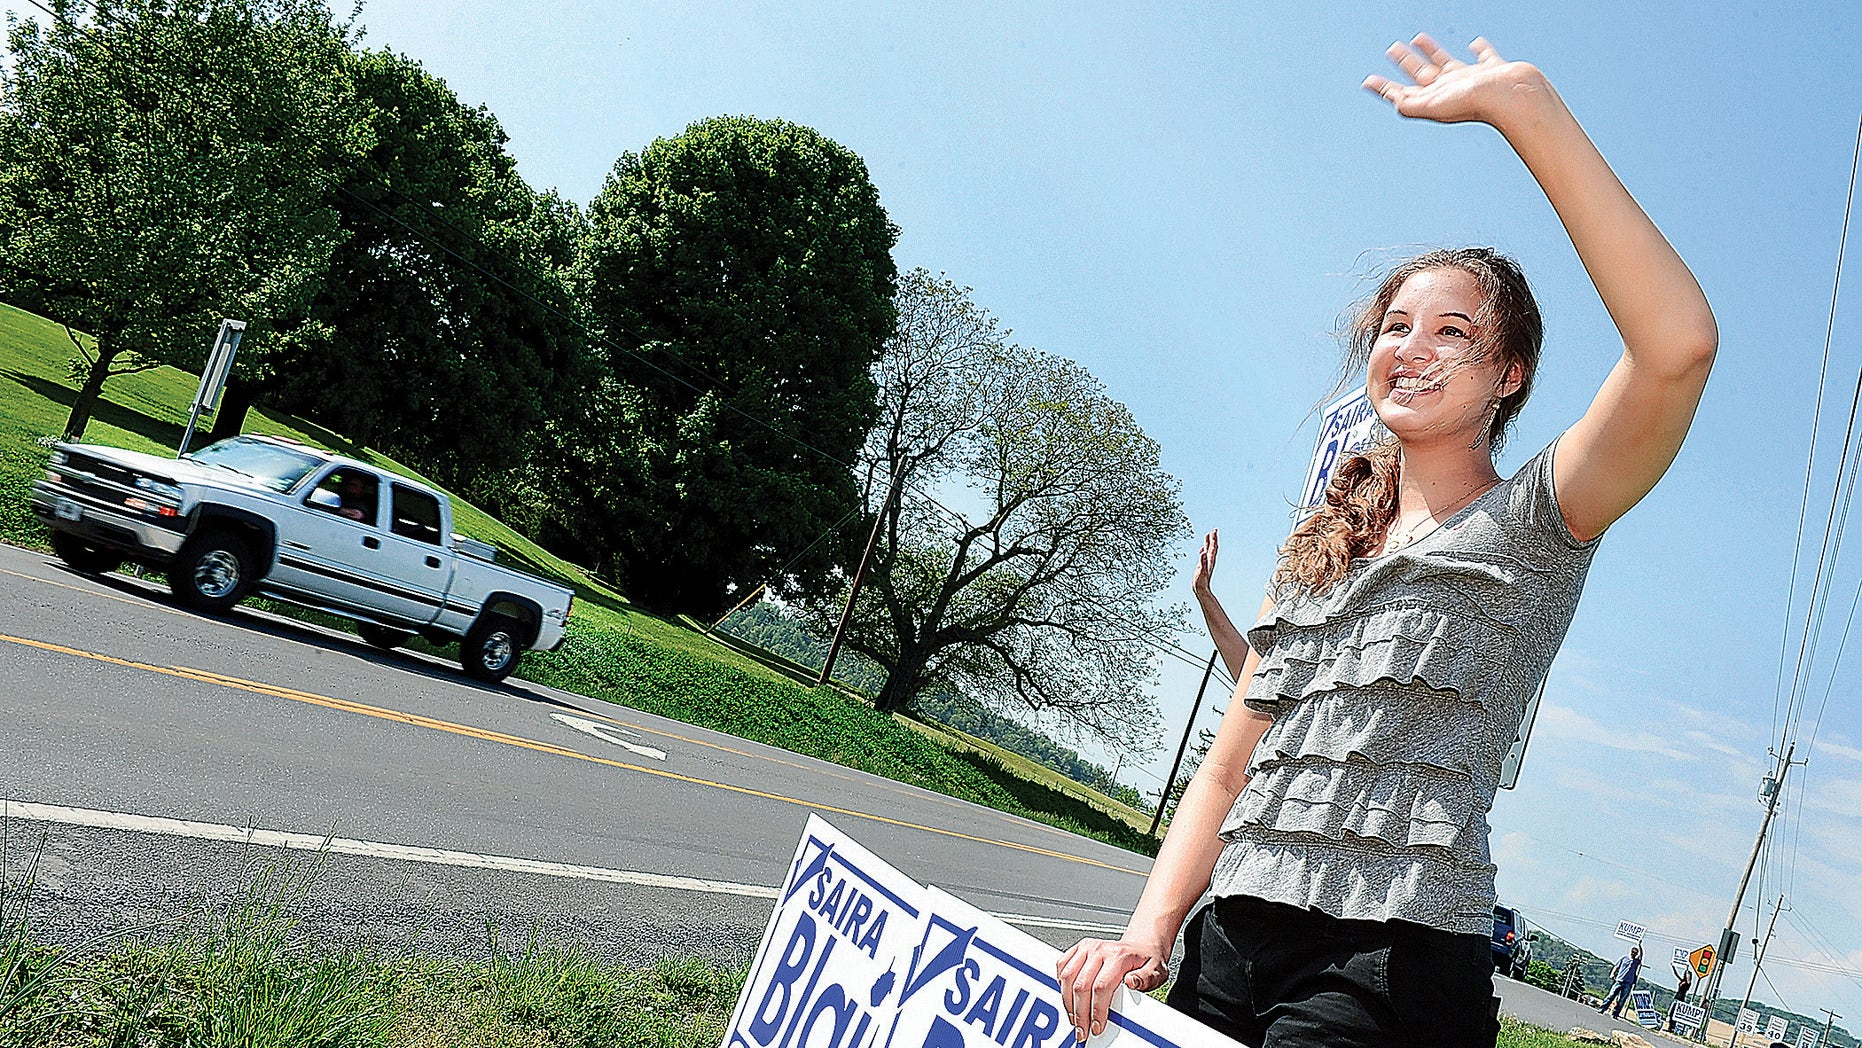 May 13, 2014:  Saira Blair, a 17-year-old student at Hedgesville High School, waves to motorists along Route 9 in Hedgesville, W. Va.